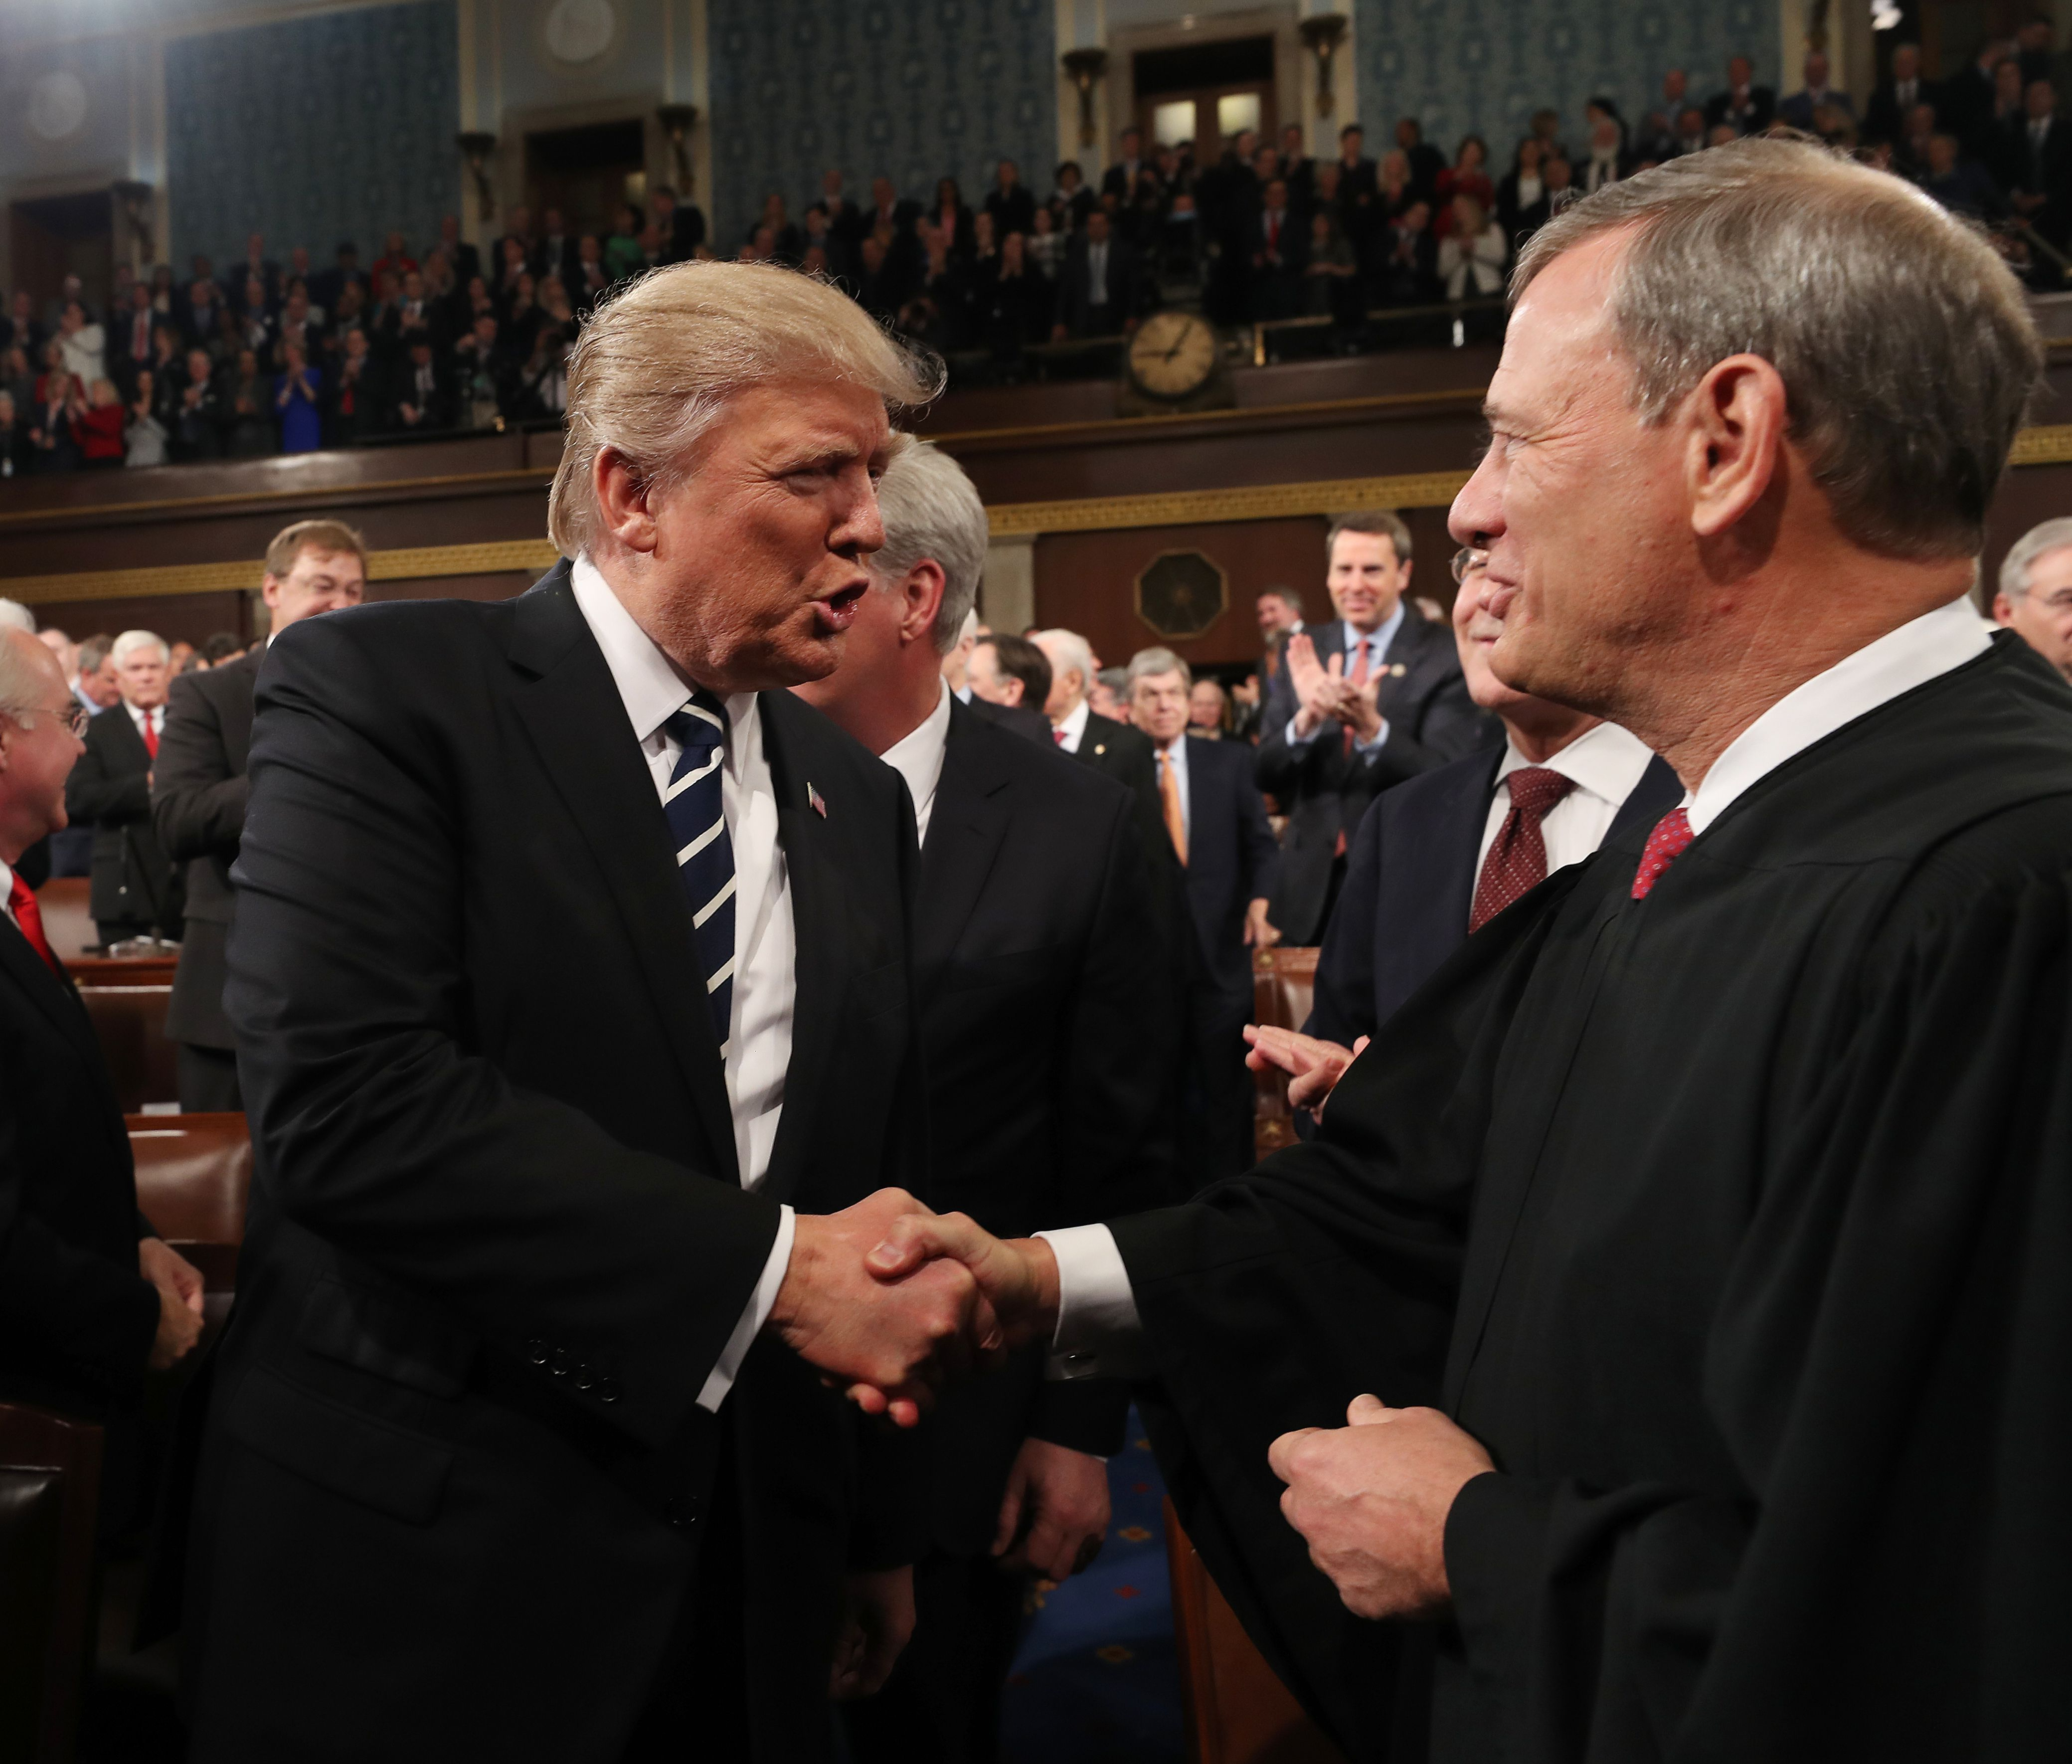 President Donald Trump shakes hands with Chief Justice John Roberts as he arrives to deliver his first address to a joint session of Congress from the floor of the House of Representatives in February 2017. (Jim Lo Scalzo/AFP/Getty Images)